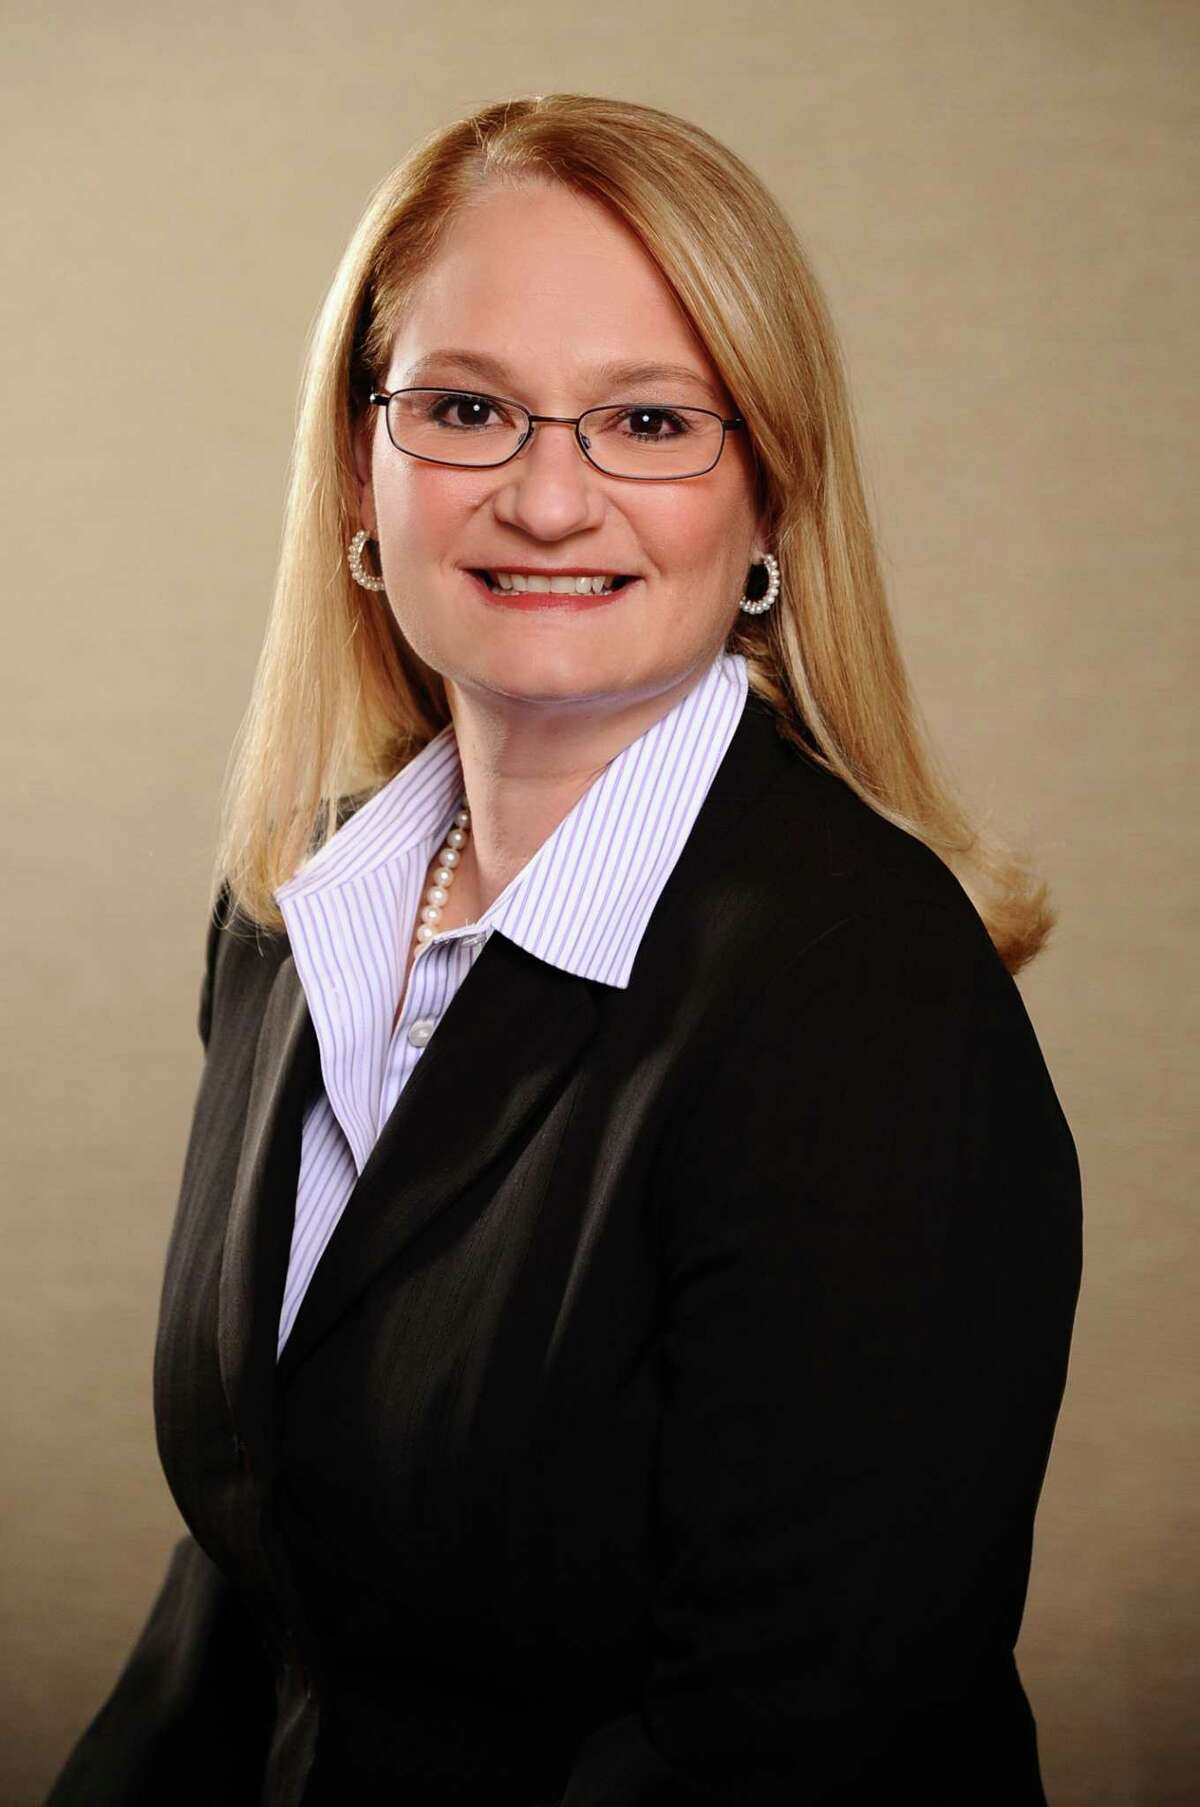 Charlotte A. Fields has been promoted to shareholder at Gieger, Laborde & Laperouse.